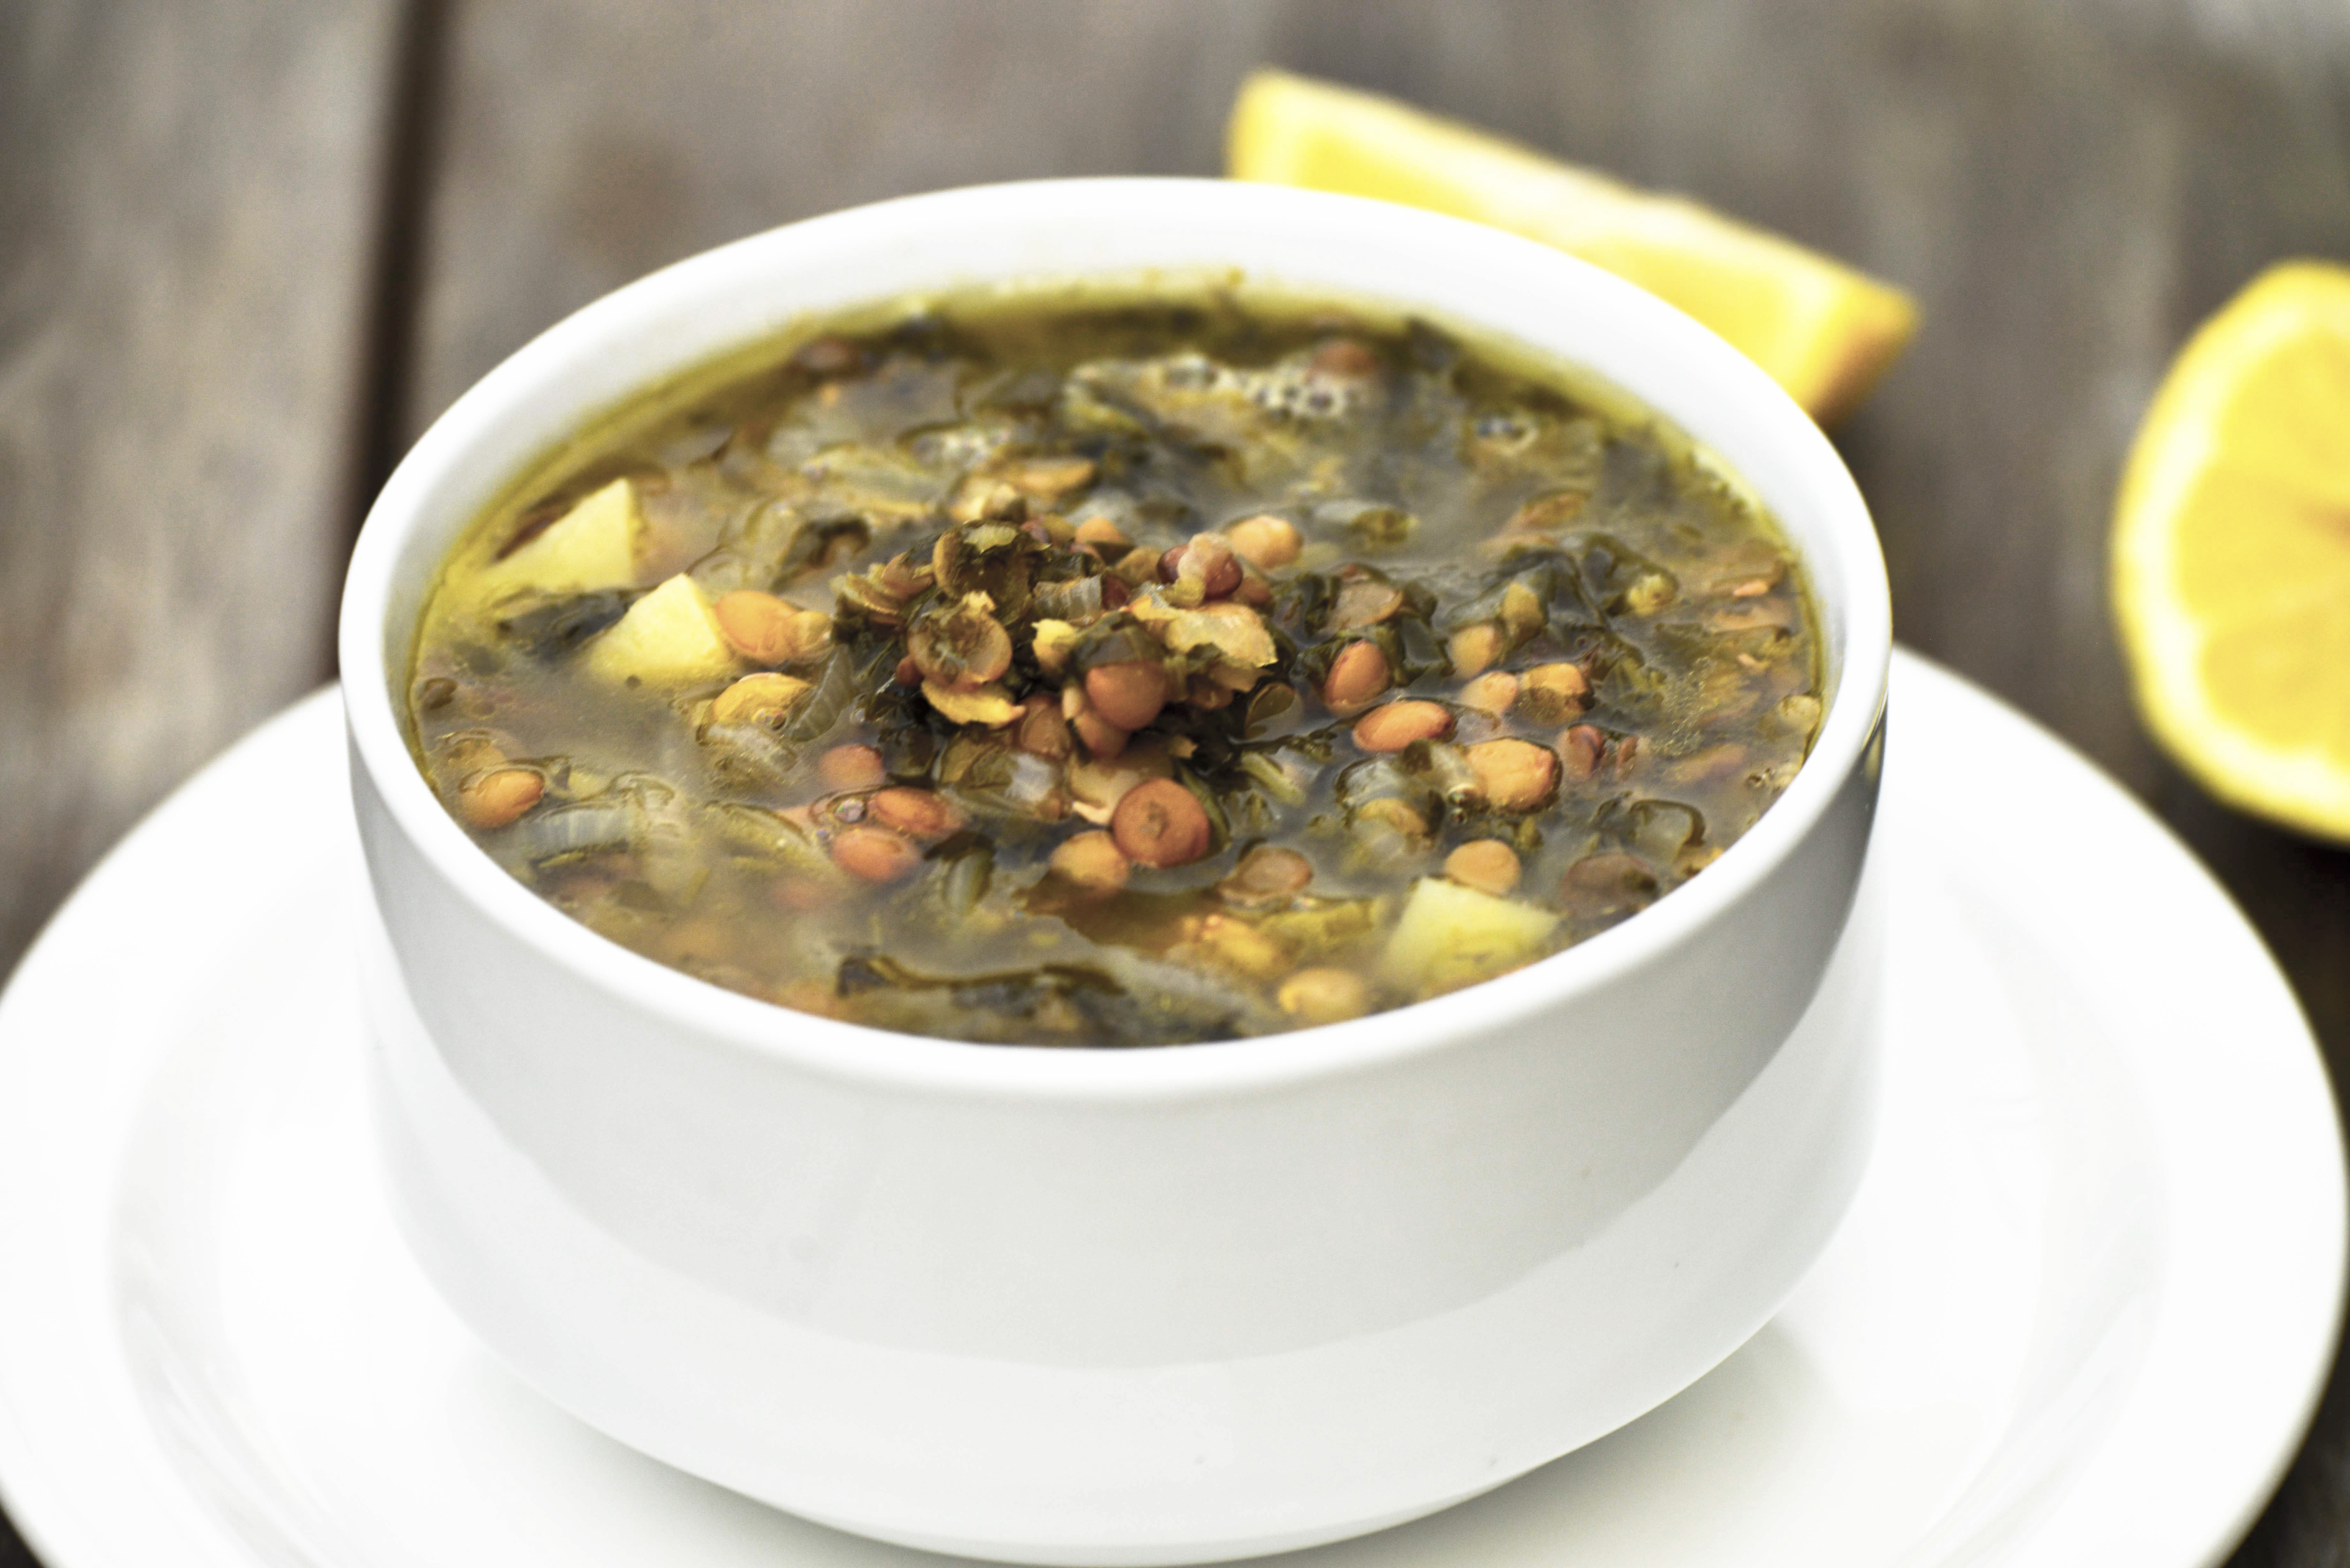 Sour Lentil Soup (Adas Bhamod).  One of my absolute favorite soups and the ultimate taste of winter and is sure to please on any cold evening.